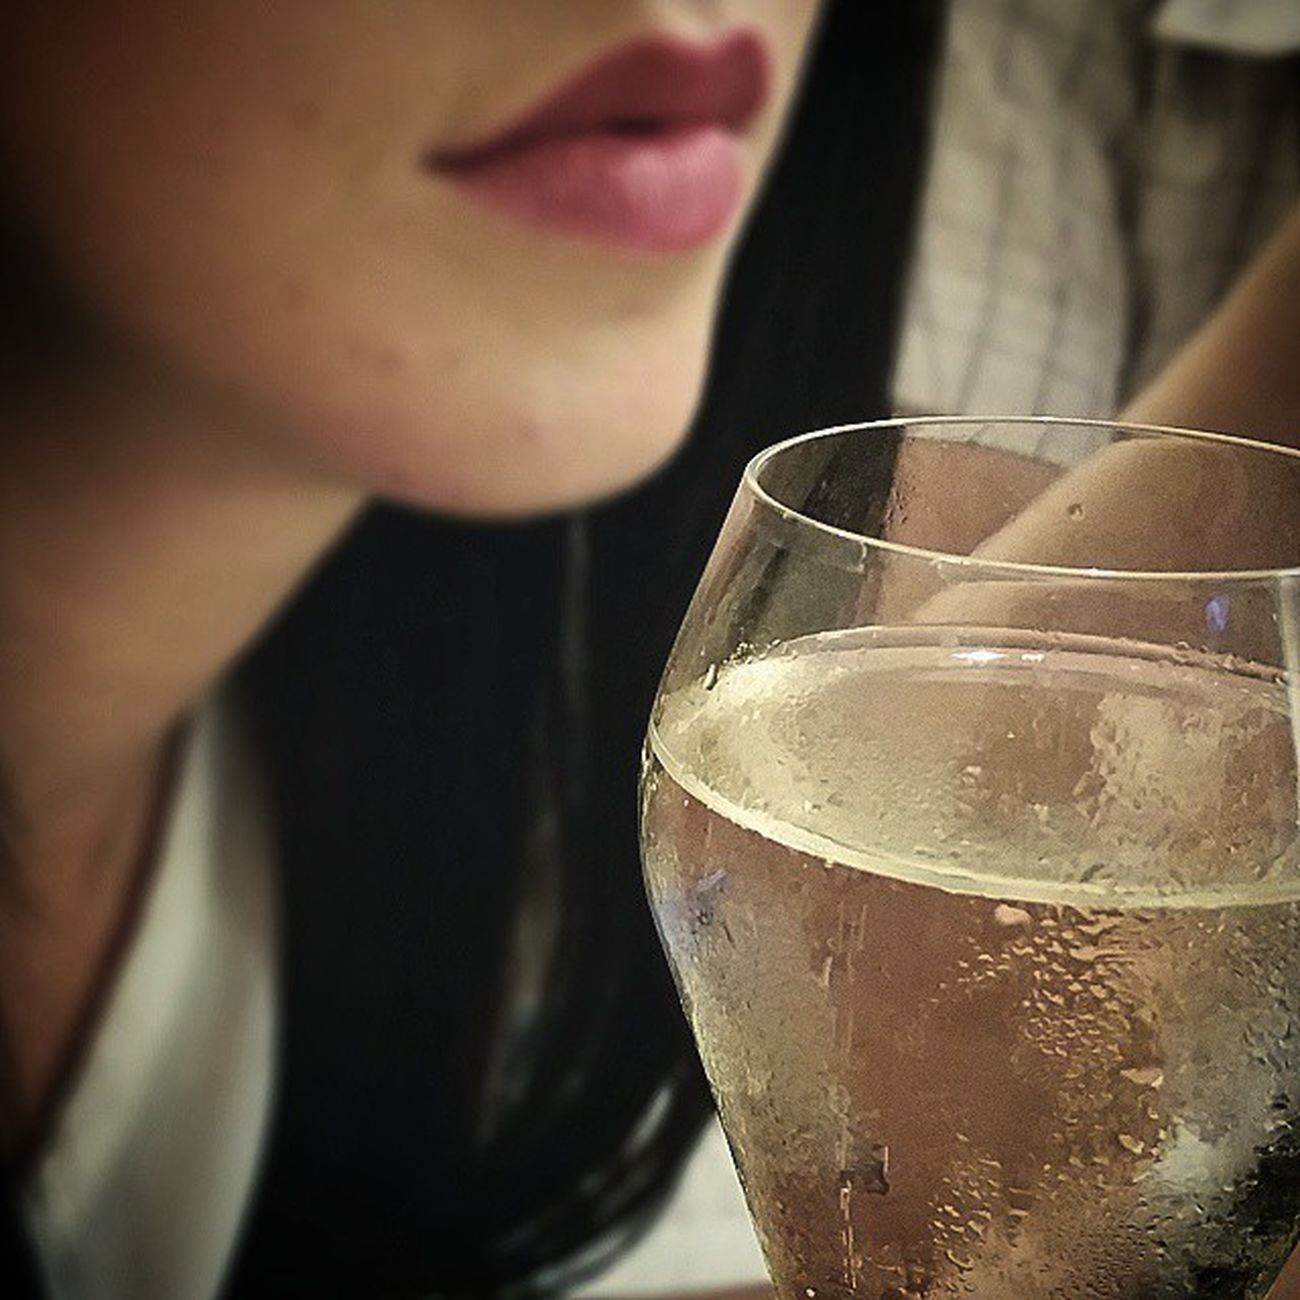 🍷👄 Me Life Mylife Aperitivo  Prosecco Lips Saturdaynight Glass Messina Prestige Glass Messina Saturday Instagood Instalife Dailyphoto Bestpicture Goodtime GoodTimes Bestoftheday Bollicine Cincin Lifestyle Goodtime GoodTimes picoftheday lights silhouette sicily dailyphoto cherrylips instafocus instaape ape